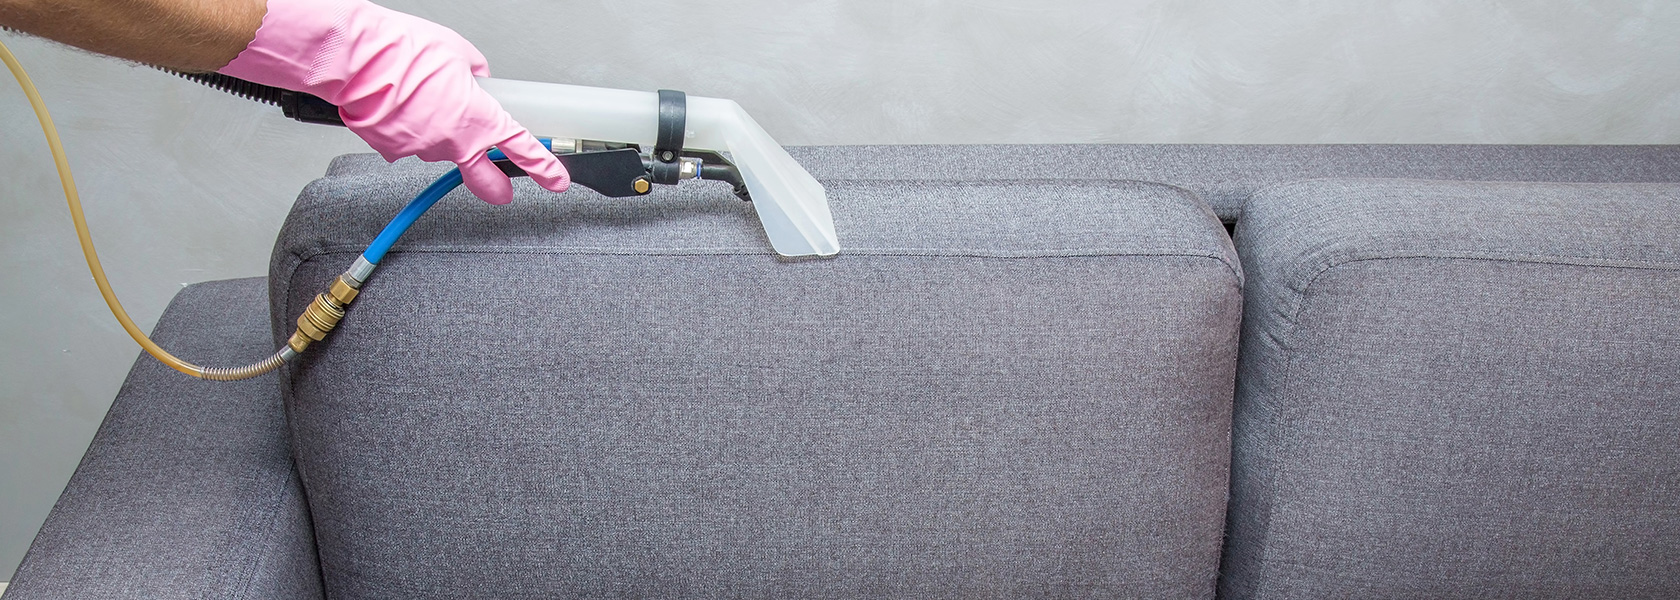 Sofa Cleaning Services in Abu Dhabi